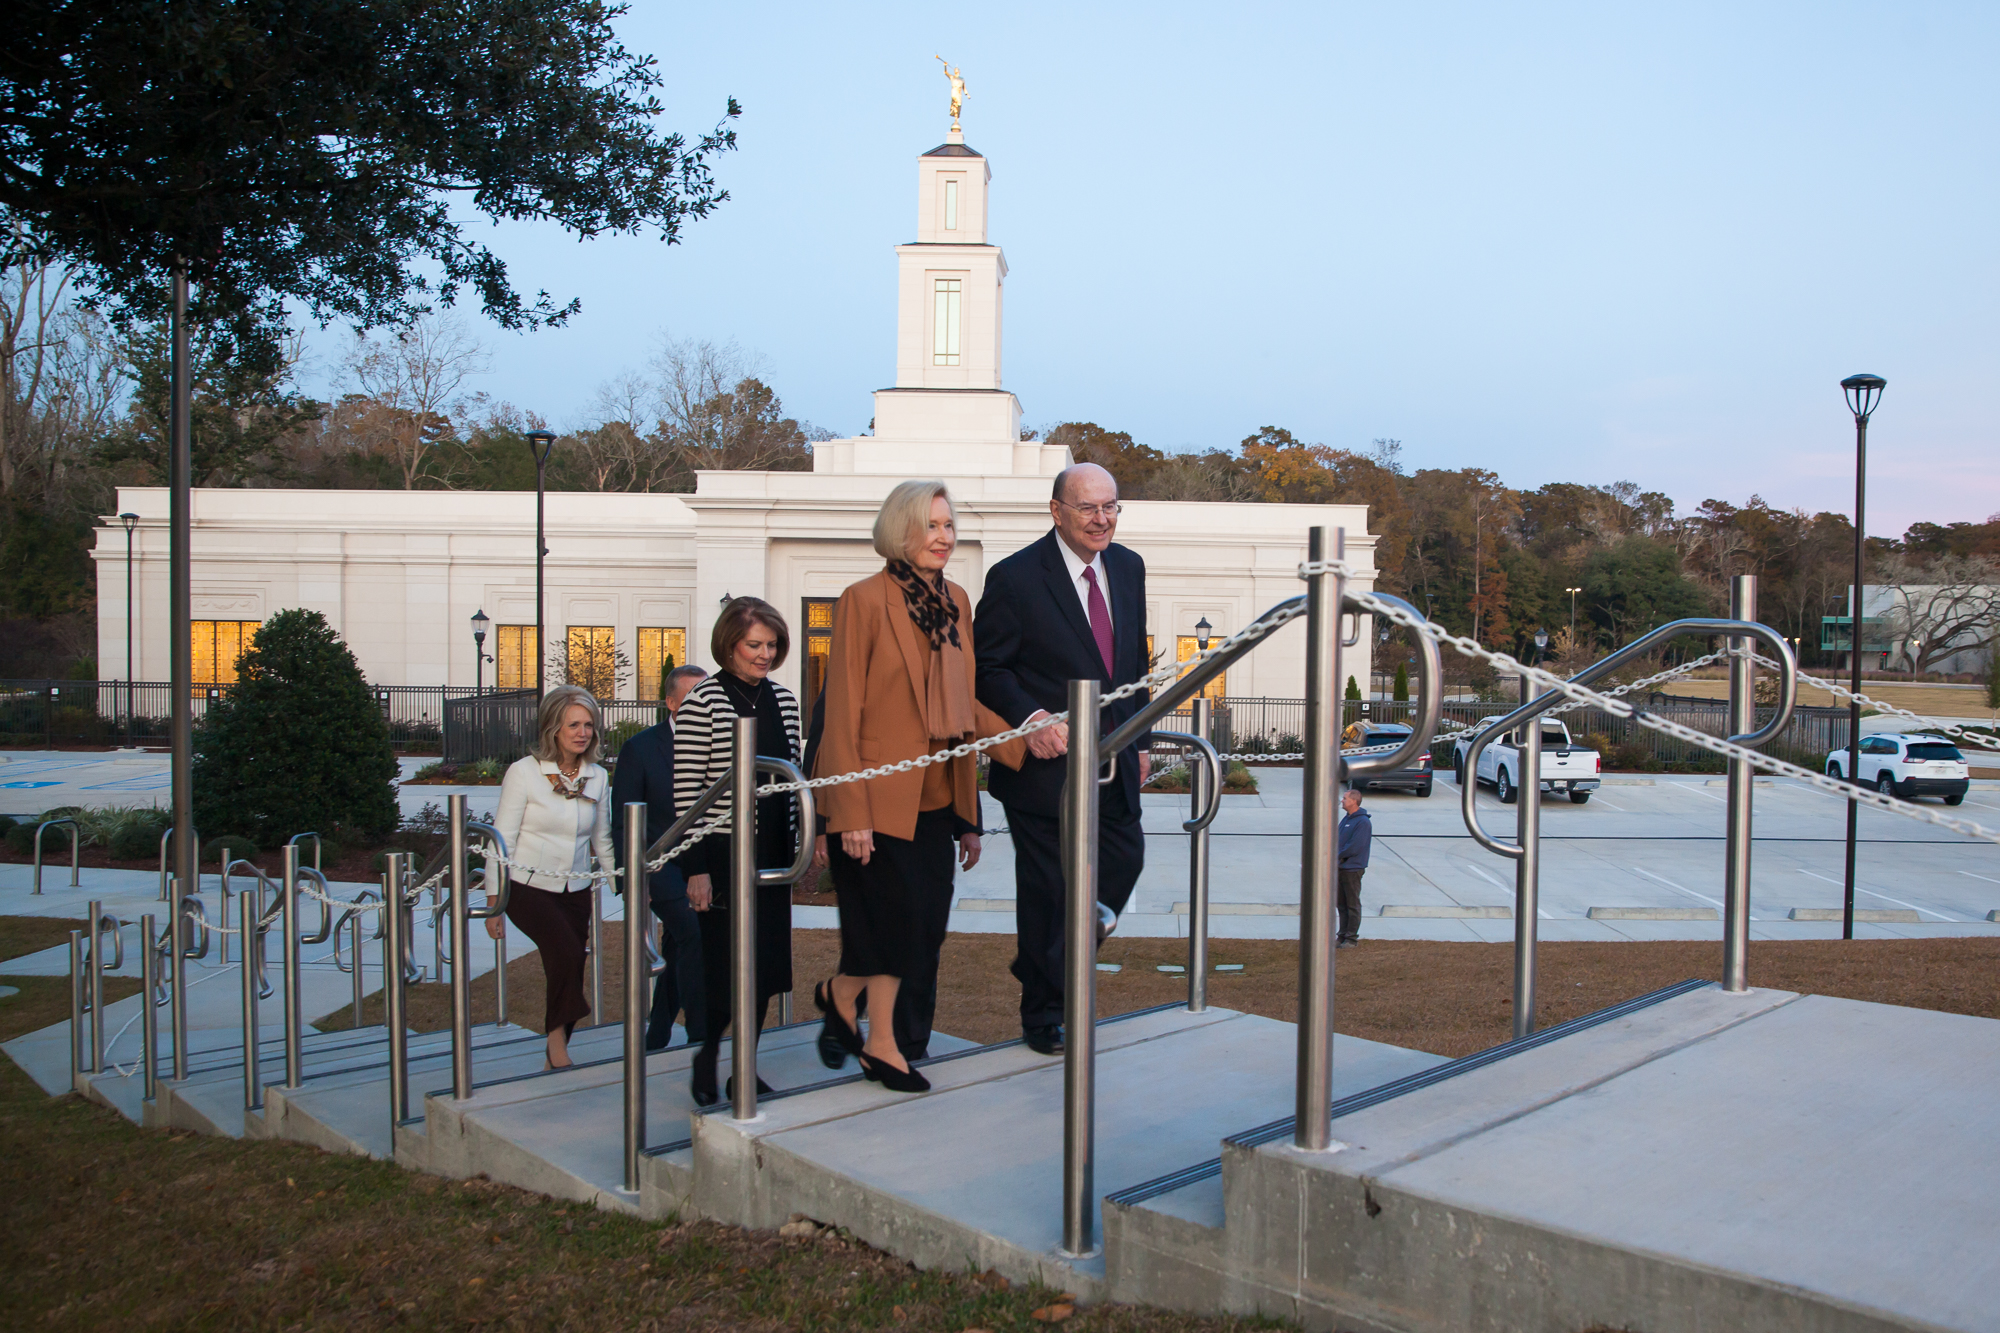 Elder Quentin L. Cook of the Quorum of the Twelve Apostles and his wife, Sister Mary Cook, walk up the path from the Baton Rouge Louisiana Temple to the adjacent stake center followed by Elder James B. Martino, General Authority Seventy and president of the North America Southeast Area, and his wife, Sister Jennie B. Martino and Elder Kevin R. Duncan, General Authority Seventy and executive director of the Temple Department, and his wife, Sister Nancy Duncan, on Saturday, Nov. 16, 2019.